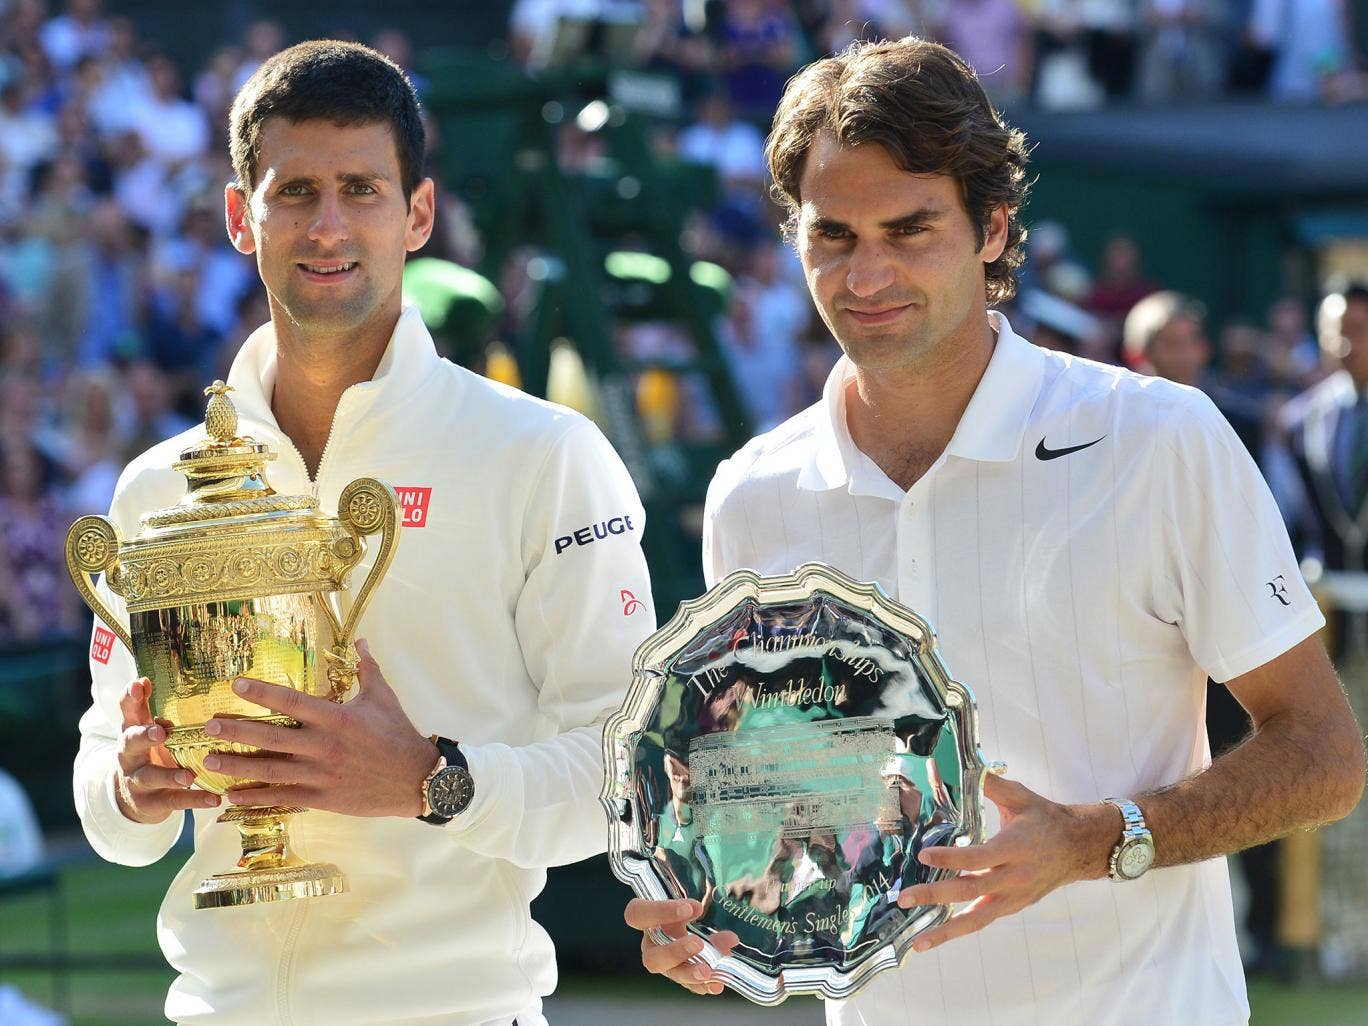 Novak Djokovic and Roger Federer pose with their trophies after the final